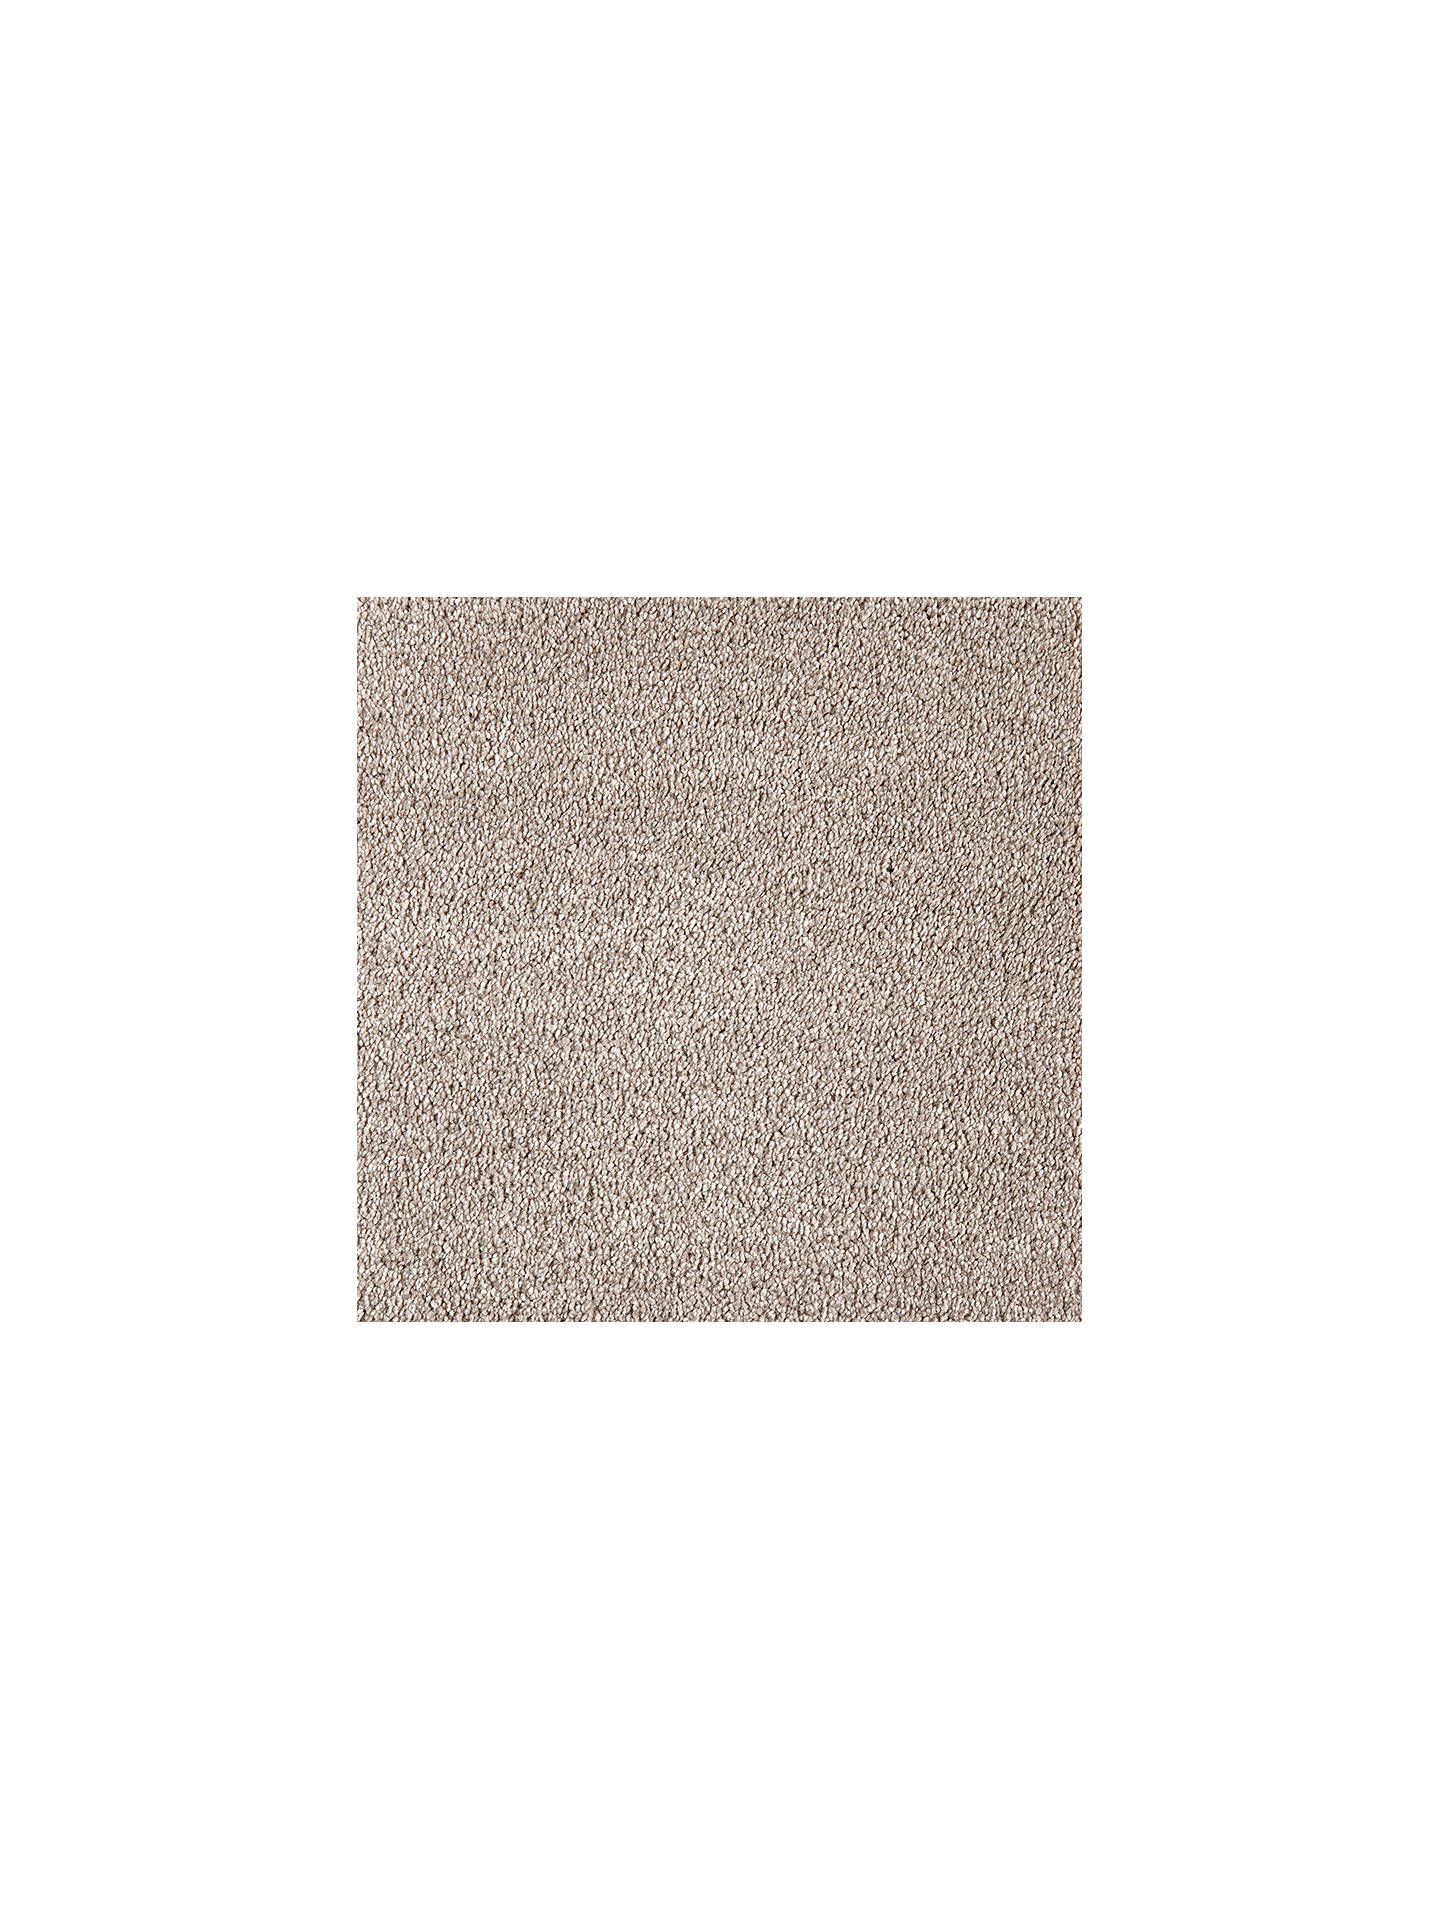 John Lewis & Partners Tranquillity Heathers Carpet, Brown Seed